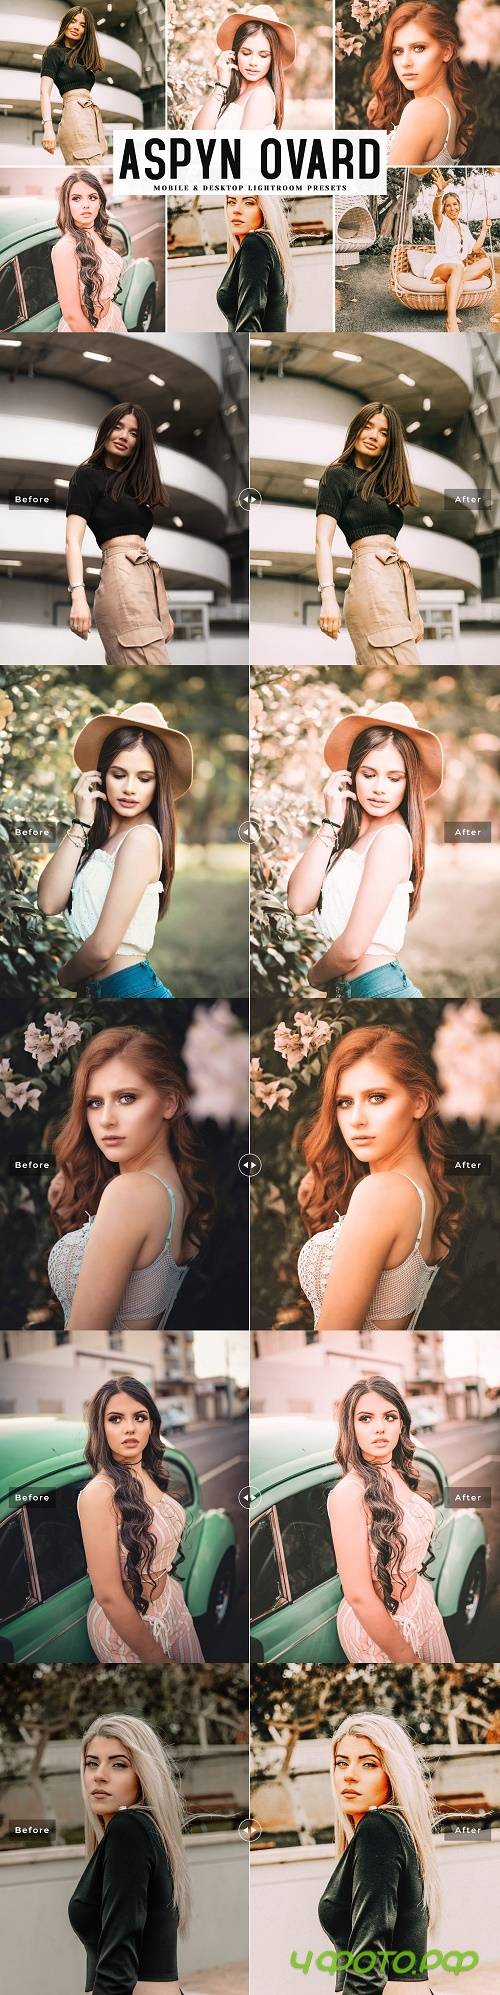 Aspyn Ovard Lightroom Presets - 4092043